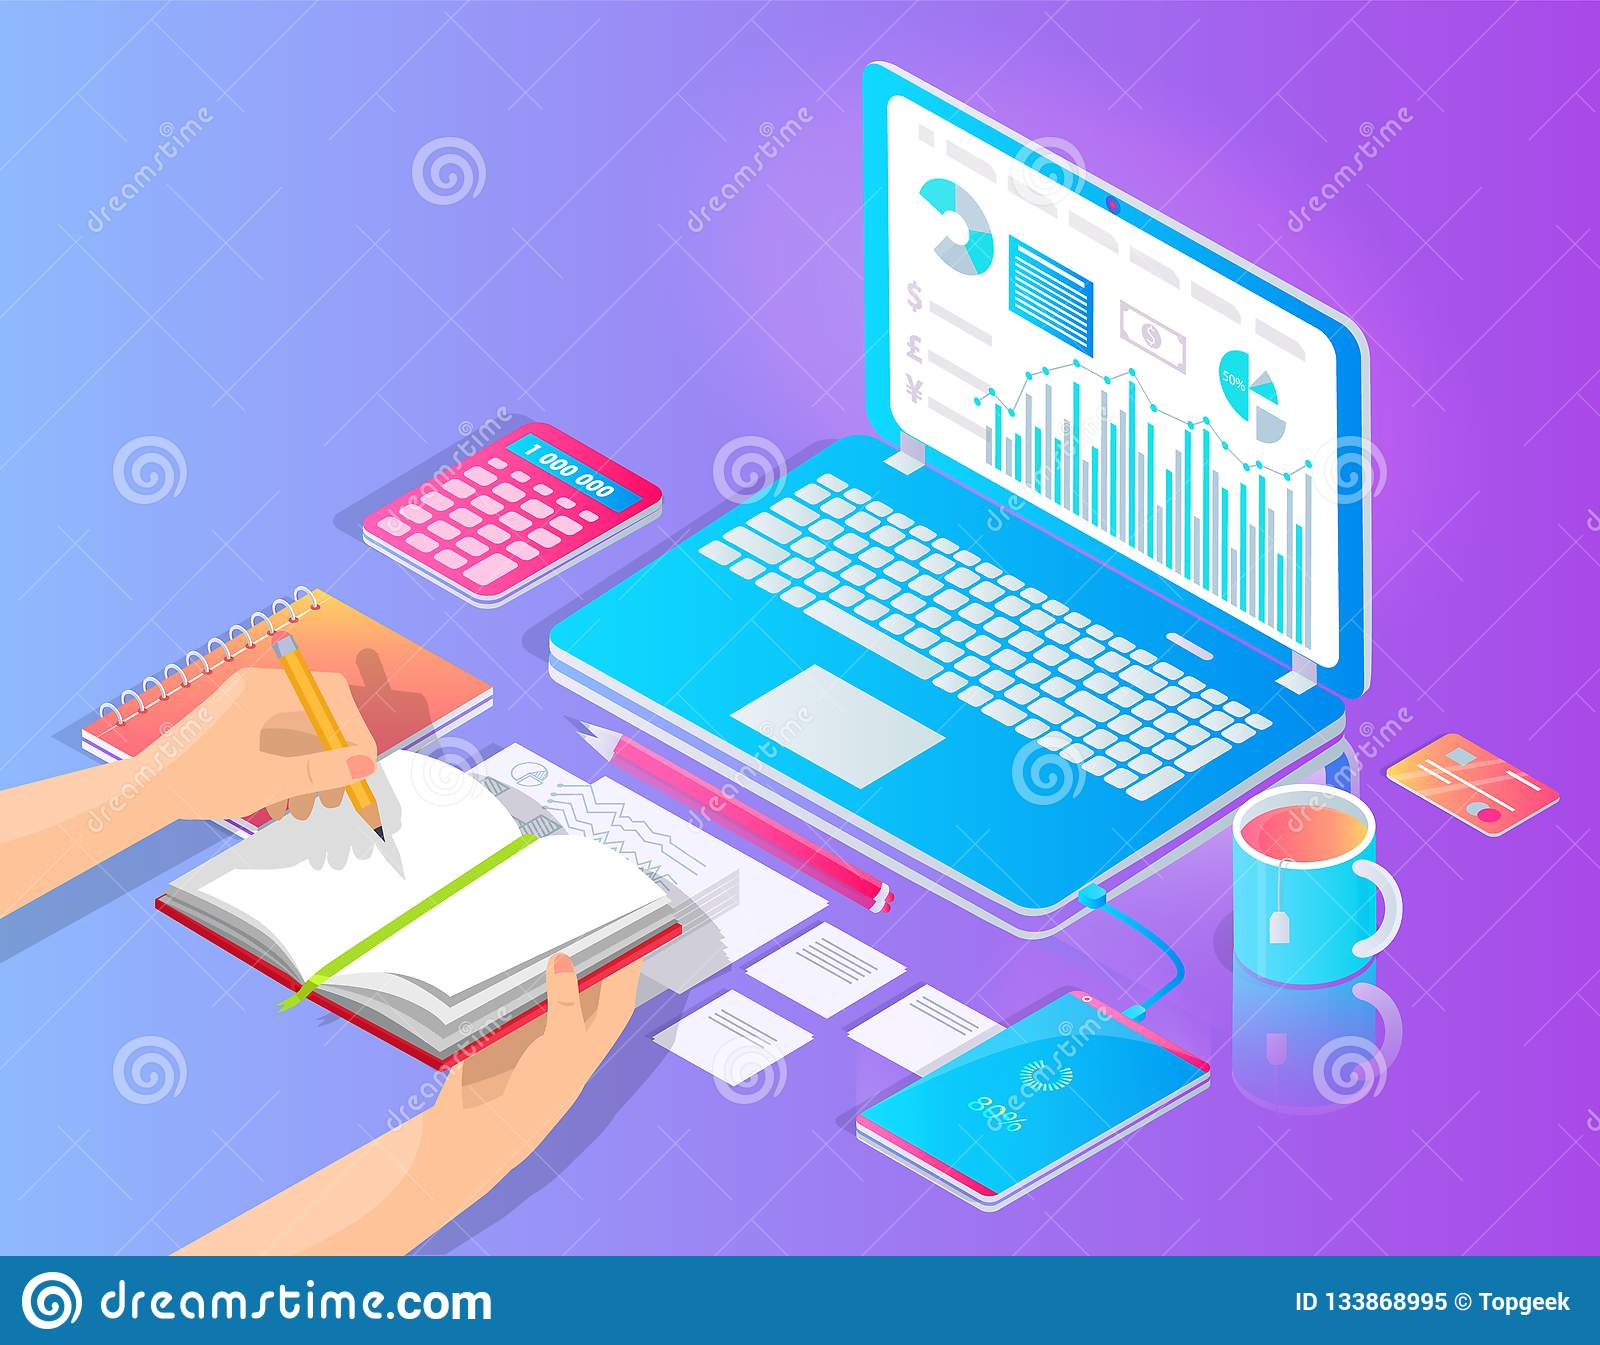 workplace with laptop and useful stuff on desktop vector banner  hands  writing in notebook, diagram and chart on gadget screen, pencil and  calculator